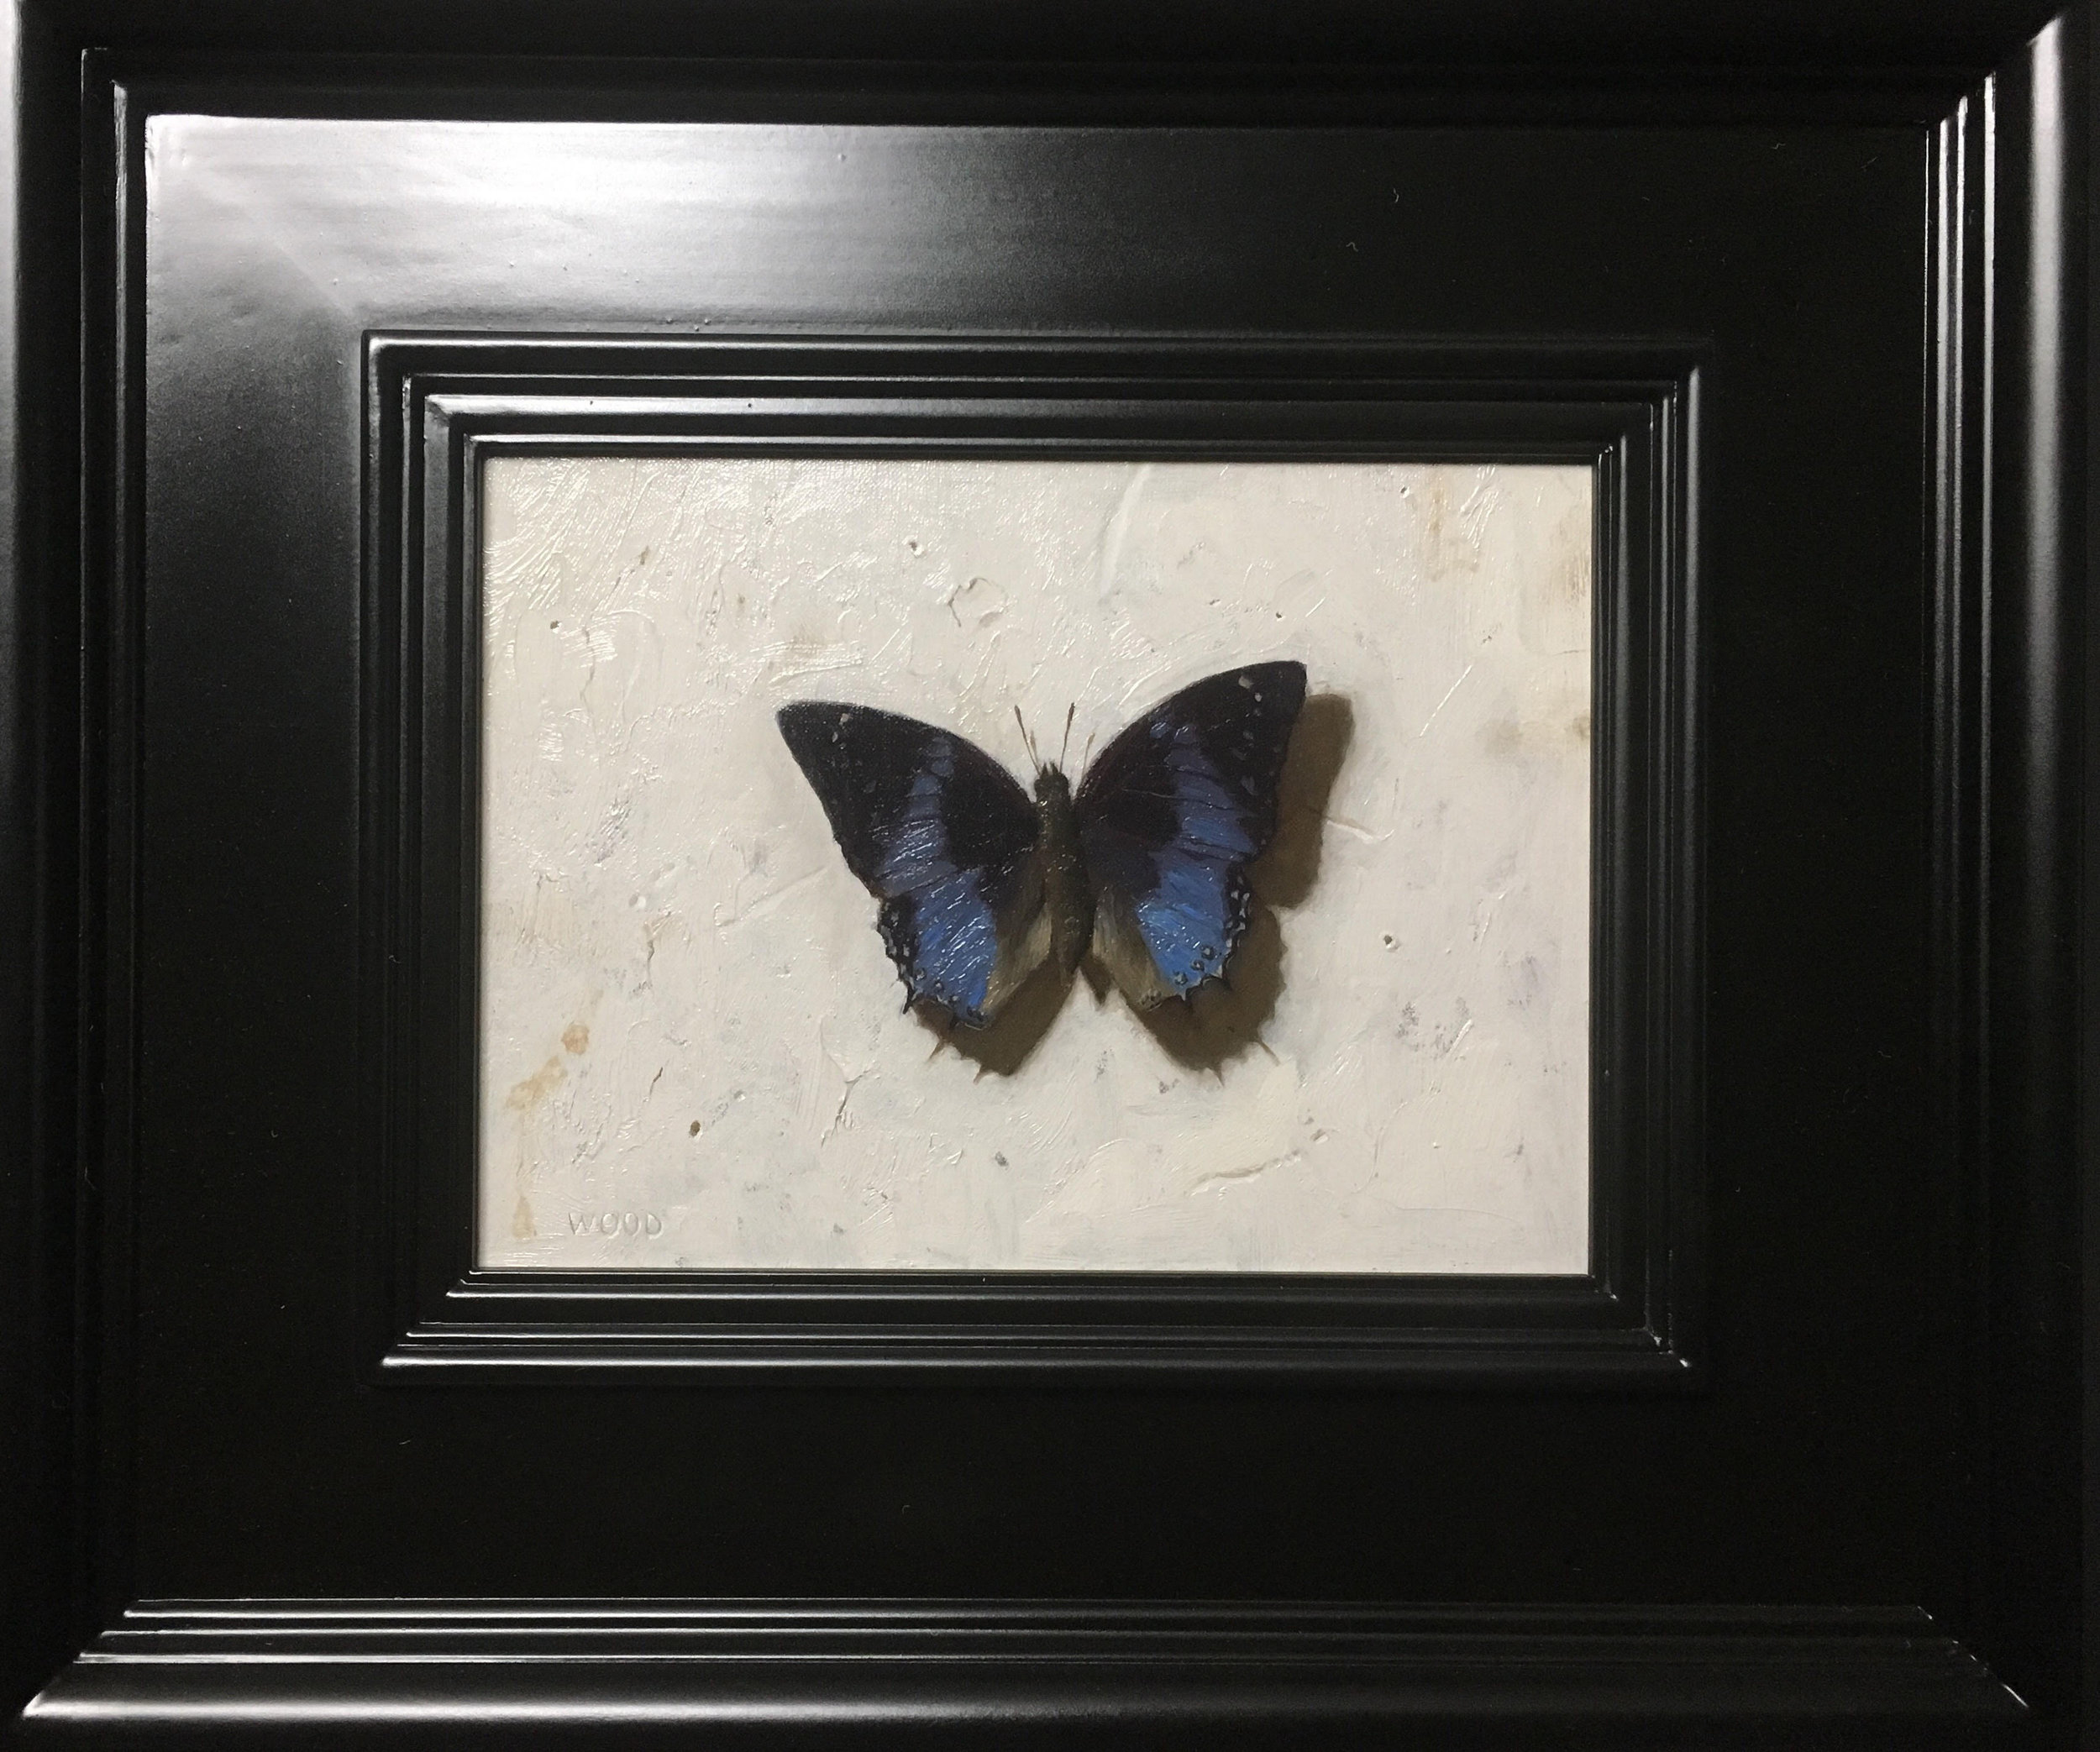 Blue Butterfly  by Justin Wood, 2018, oil on canvas, 6 x 8 in, $1,600